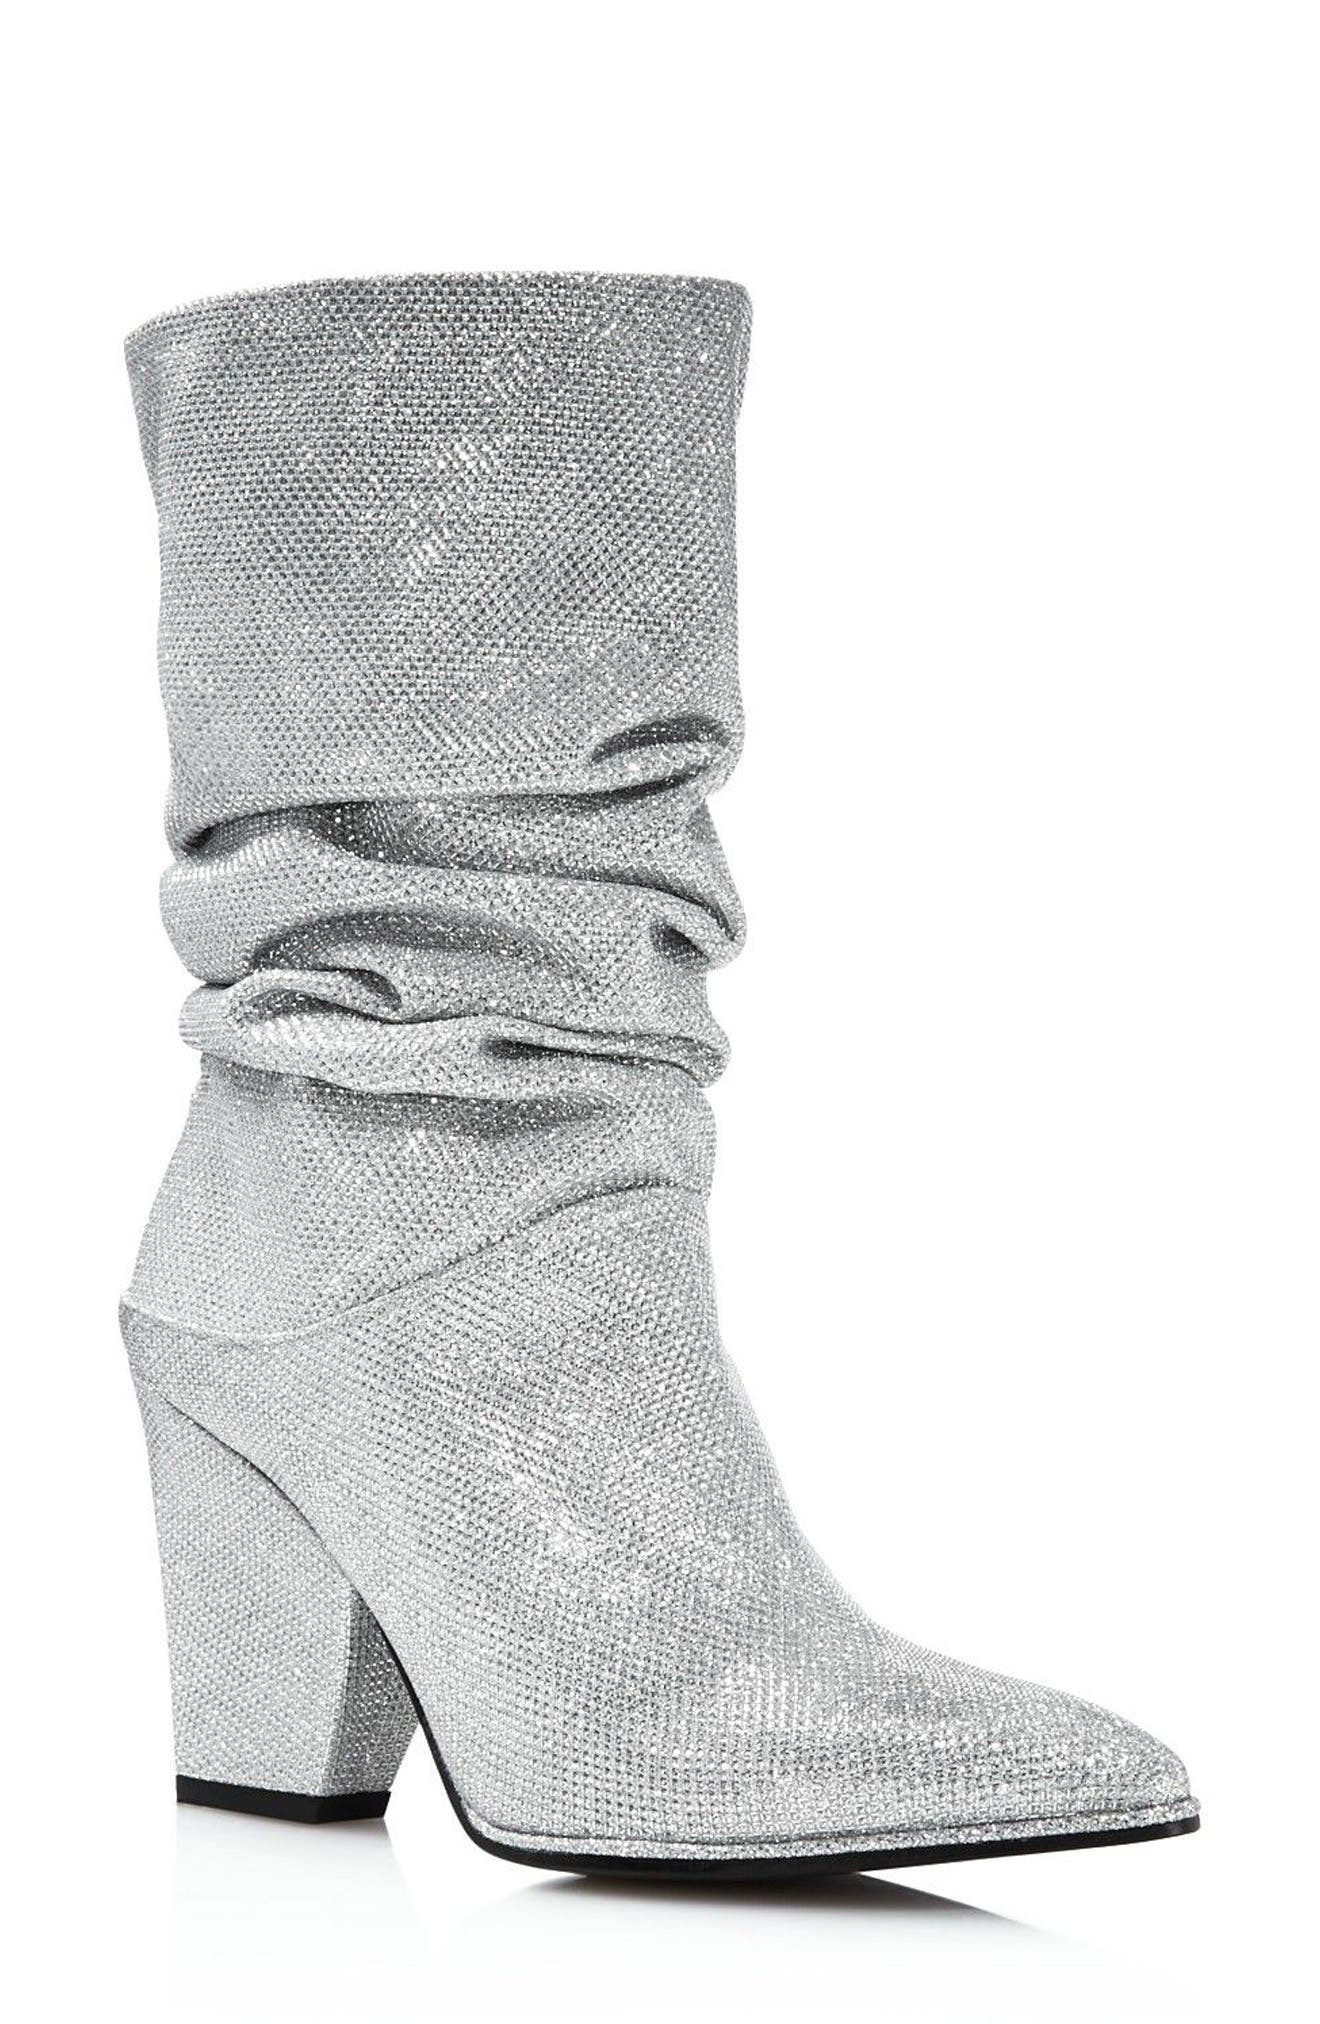 Crush Slouchy Bootie,                         Main,                         color,